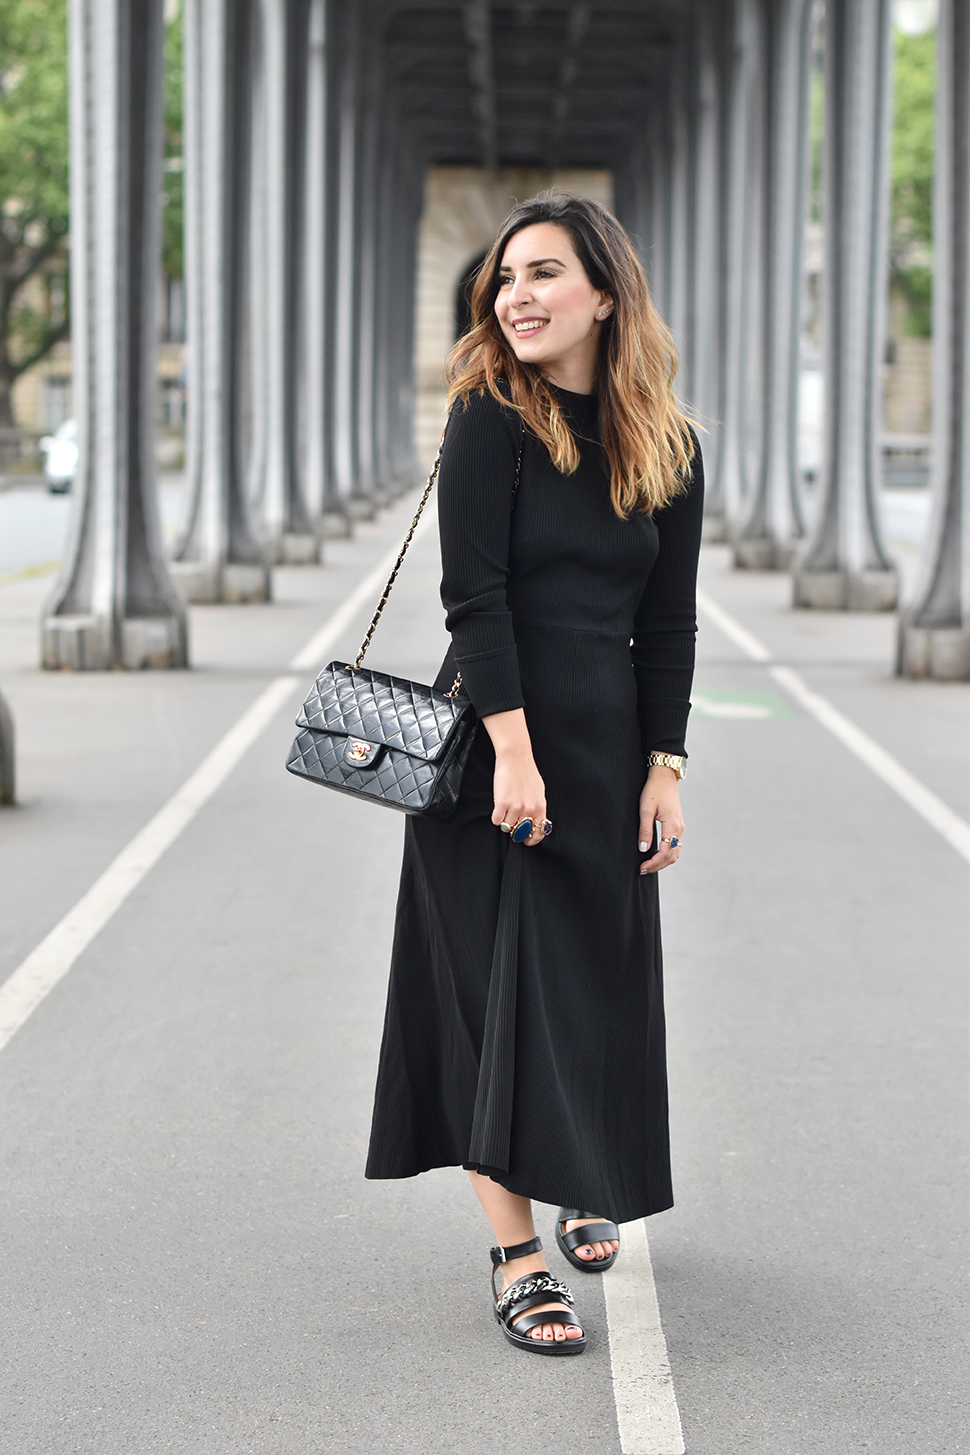 Helloitsvalentine_blackdress_BirHakeim_Givenchy_sandals_10